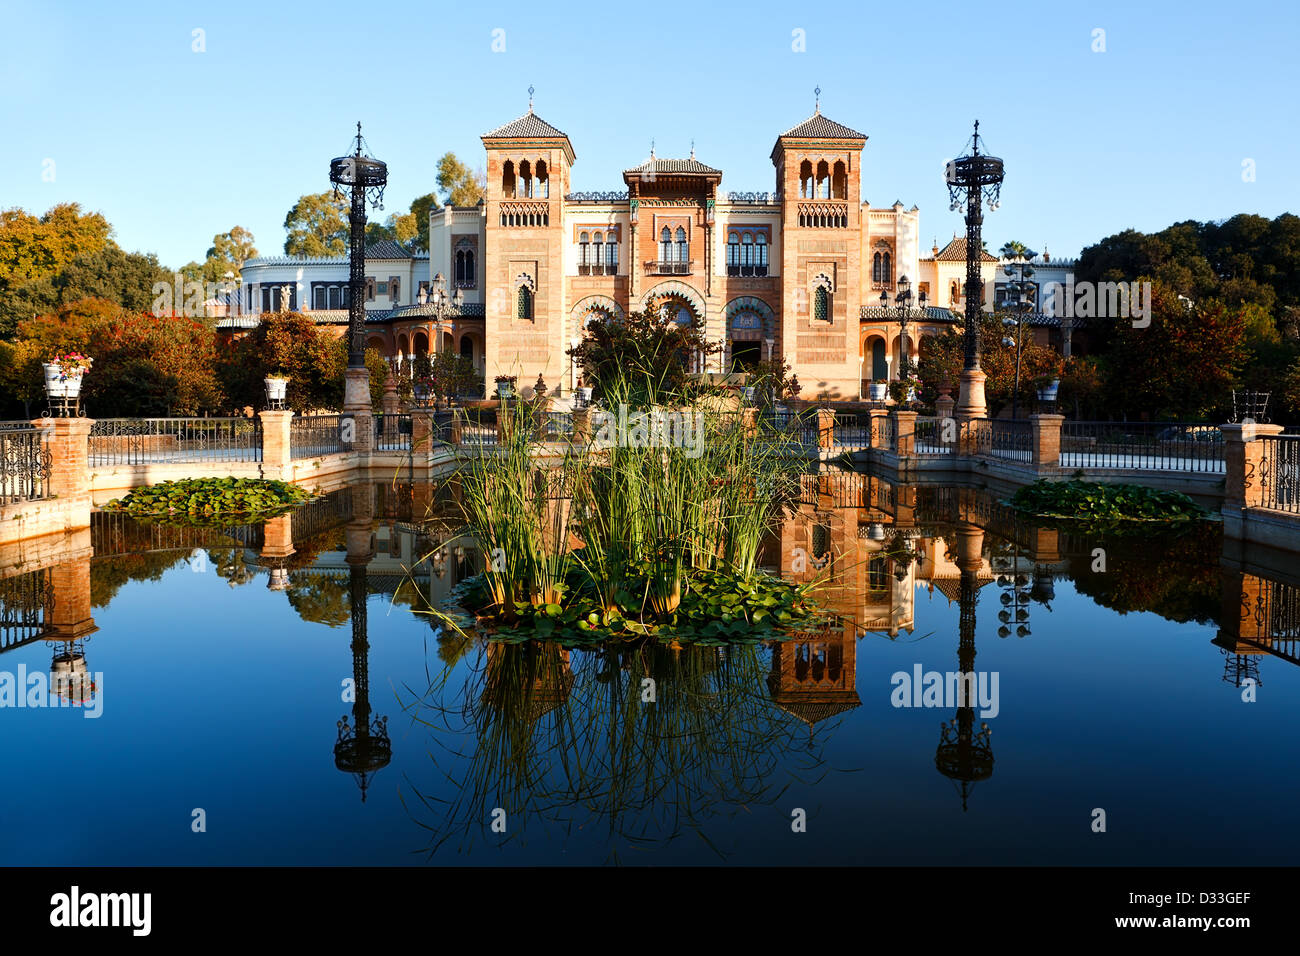 beautiful Plaza Amerika in Seville, spain - Stock Image